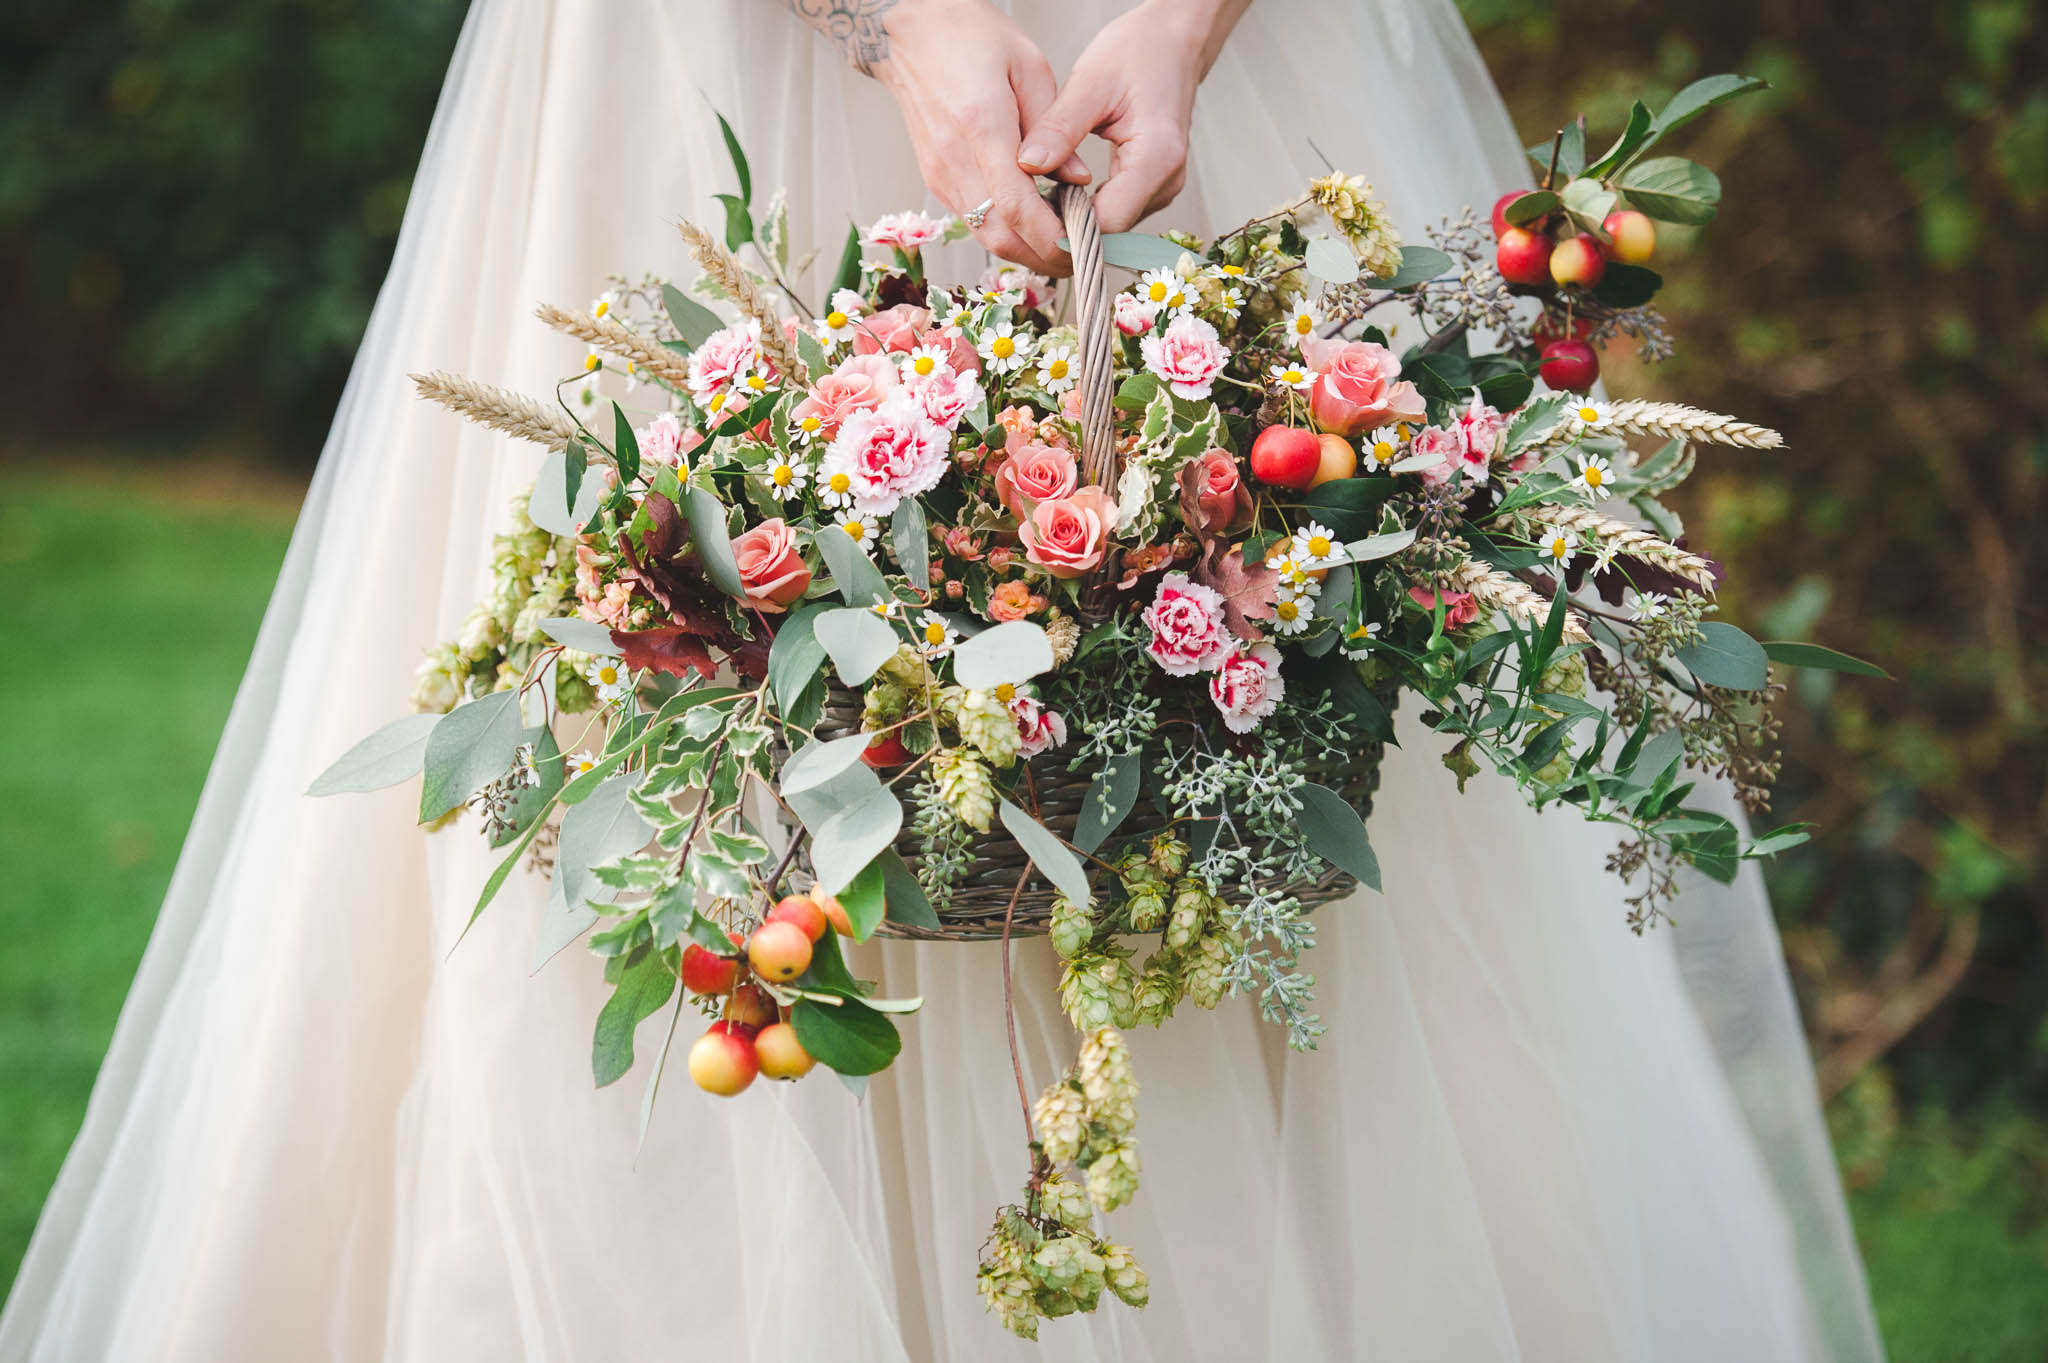 flower bouquets wedding rustic autumnal country garden wedding inspiration 4145